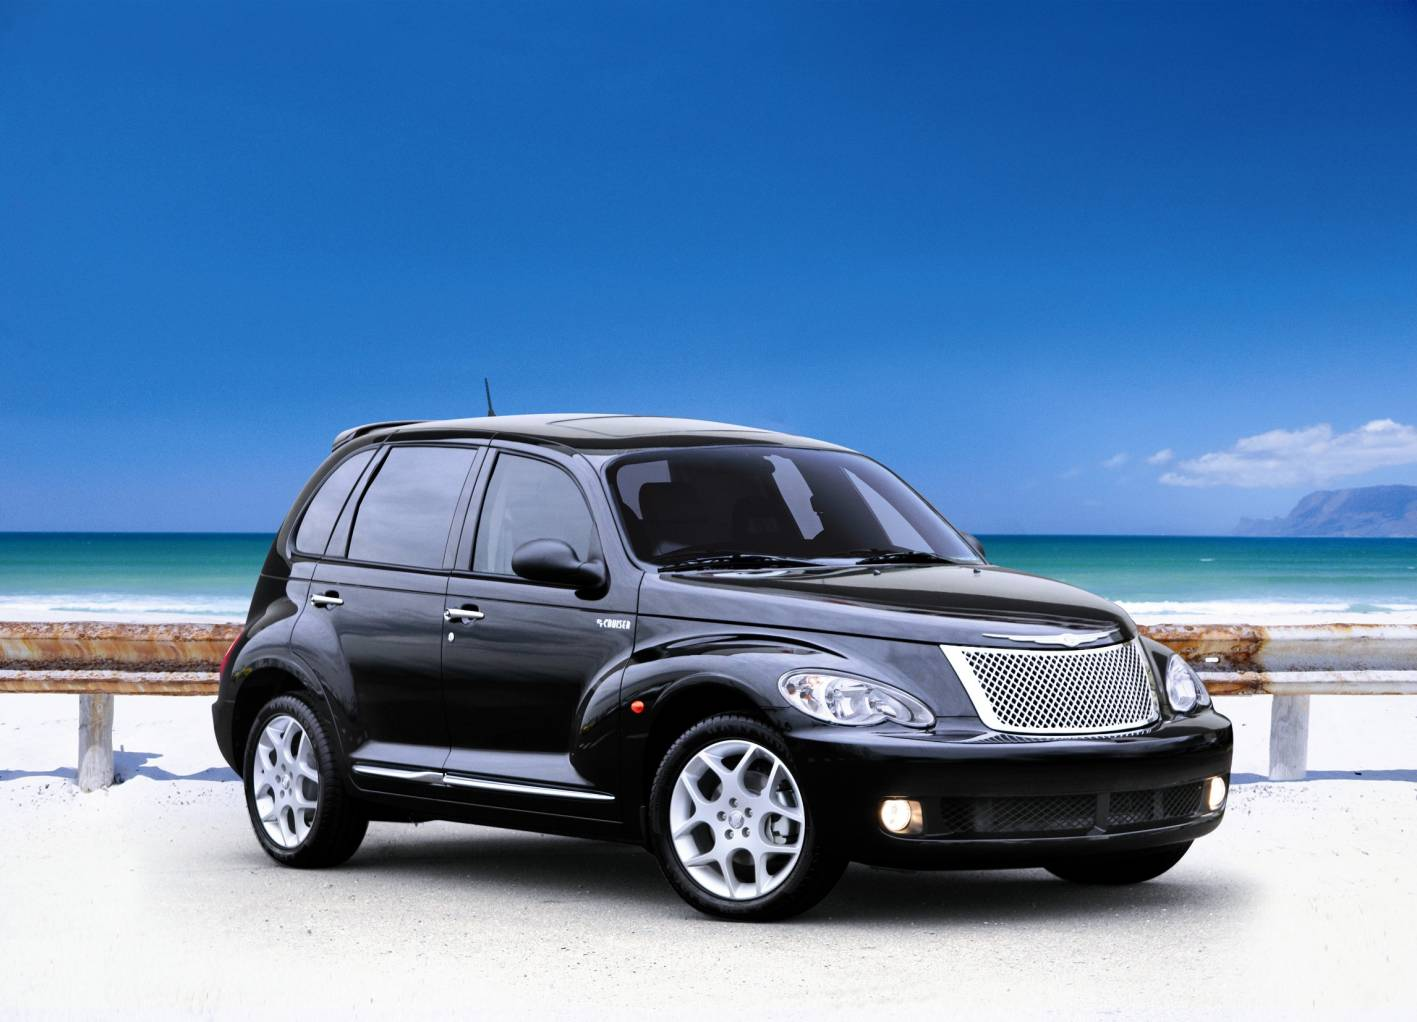 hight resolution of 2009 chrysler pt cruiser special edition released in australia pt cruiser engine diagram group picture image by tag